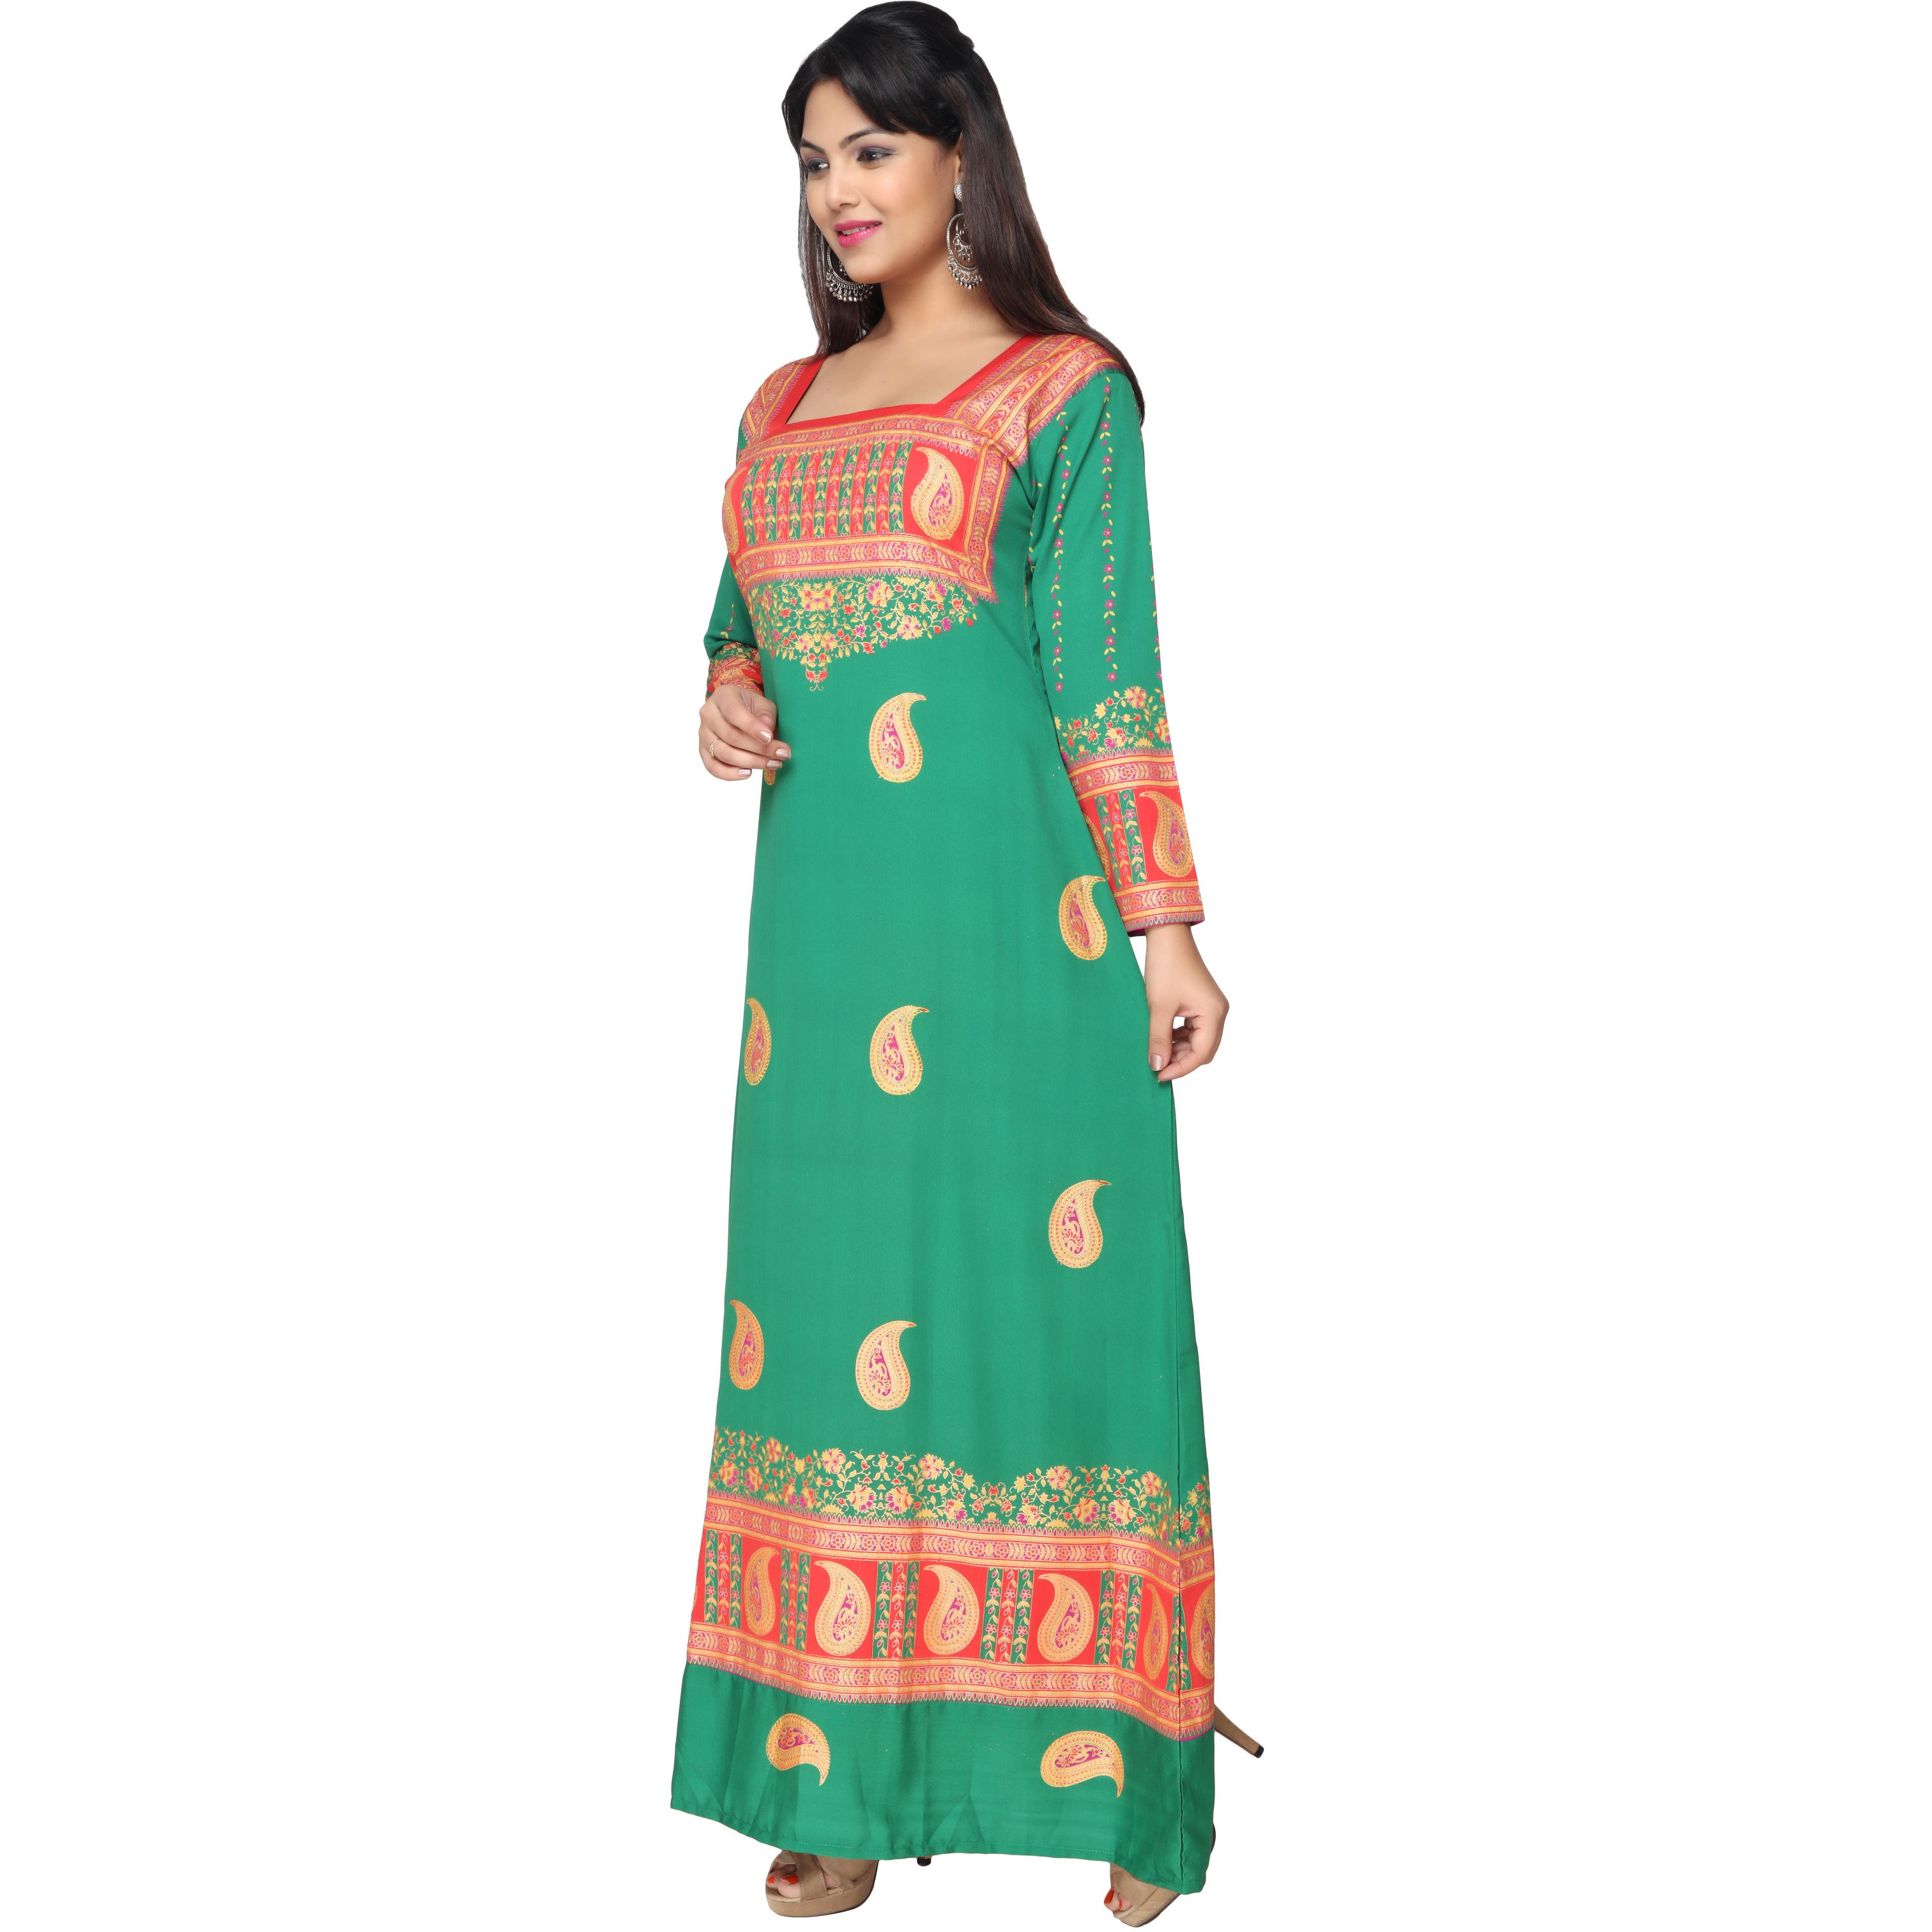 TrendyFashionMall Gold Print Kaftans Maxi Dresses with design in Front and Back (Color:TFMKFT01014-GREEN, Size:44 - X-LARGE)